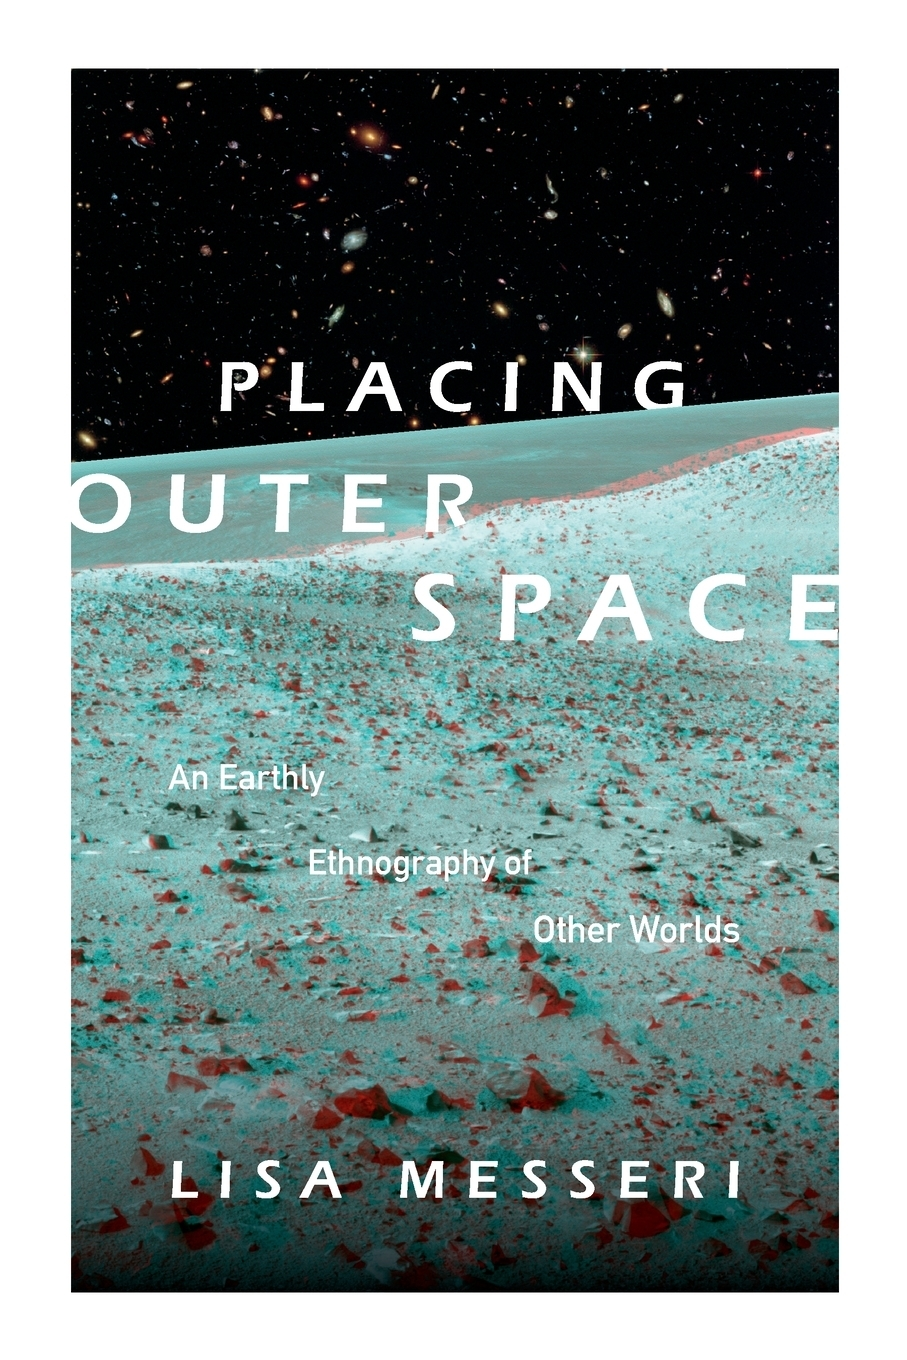 Lisa Messeri. Placing Outer Space. An Earthly Ethnography of Other Worlds